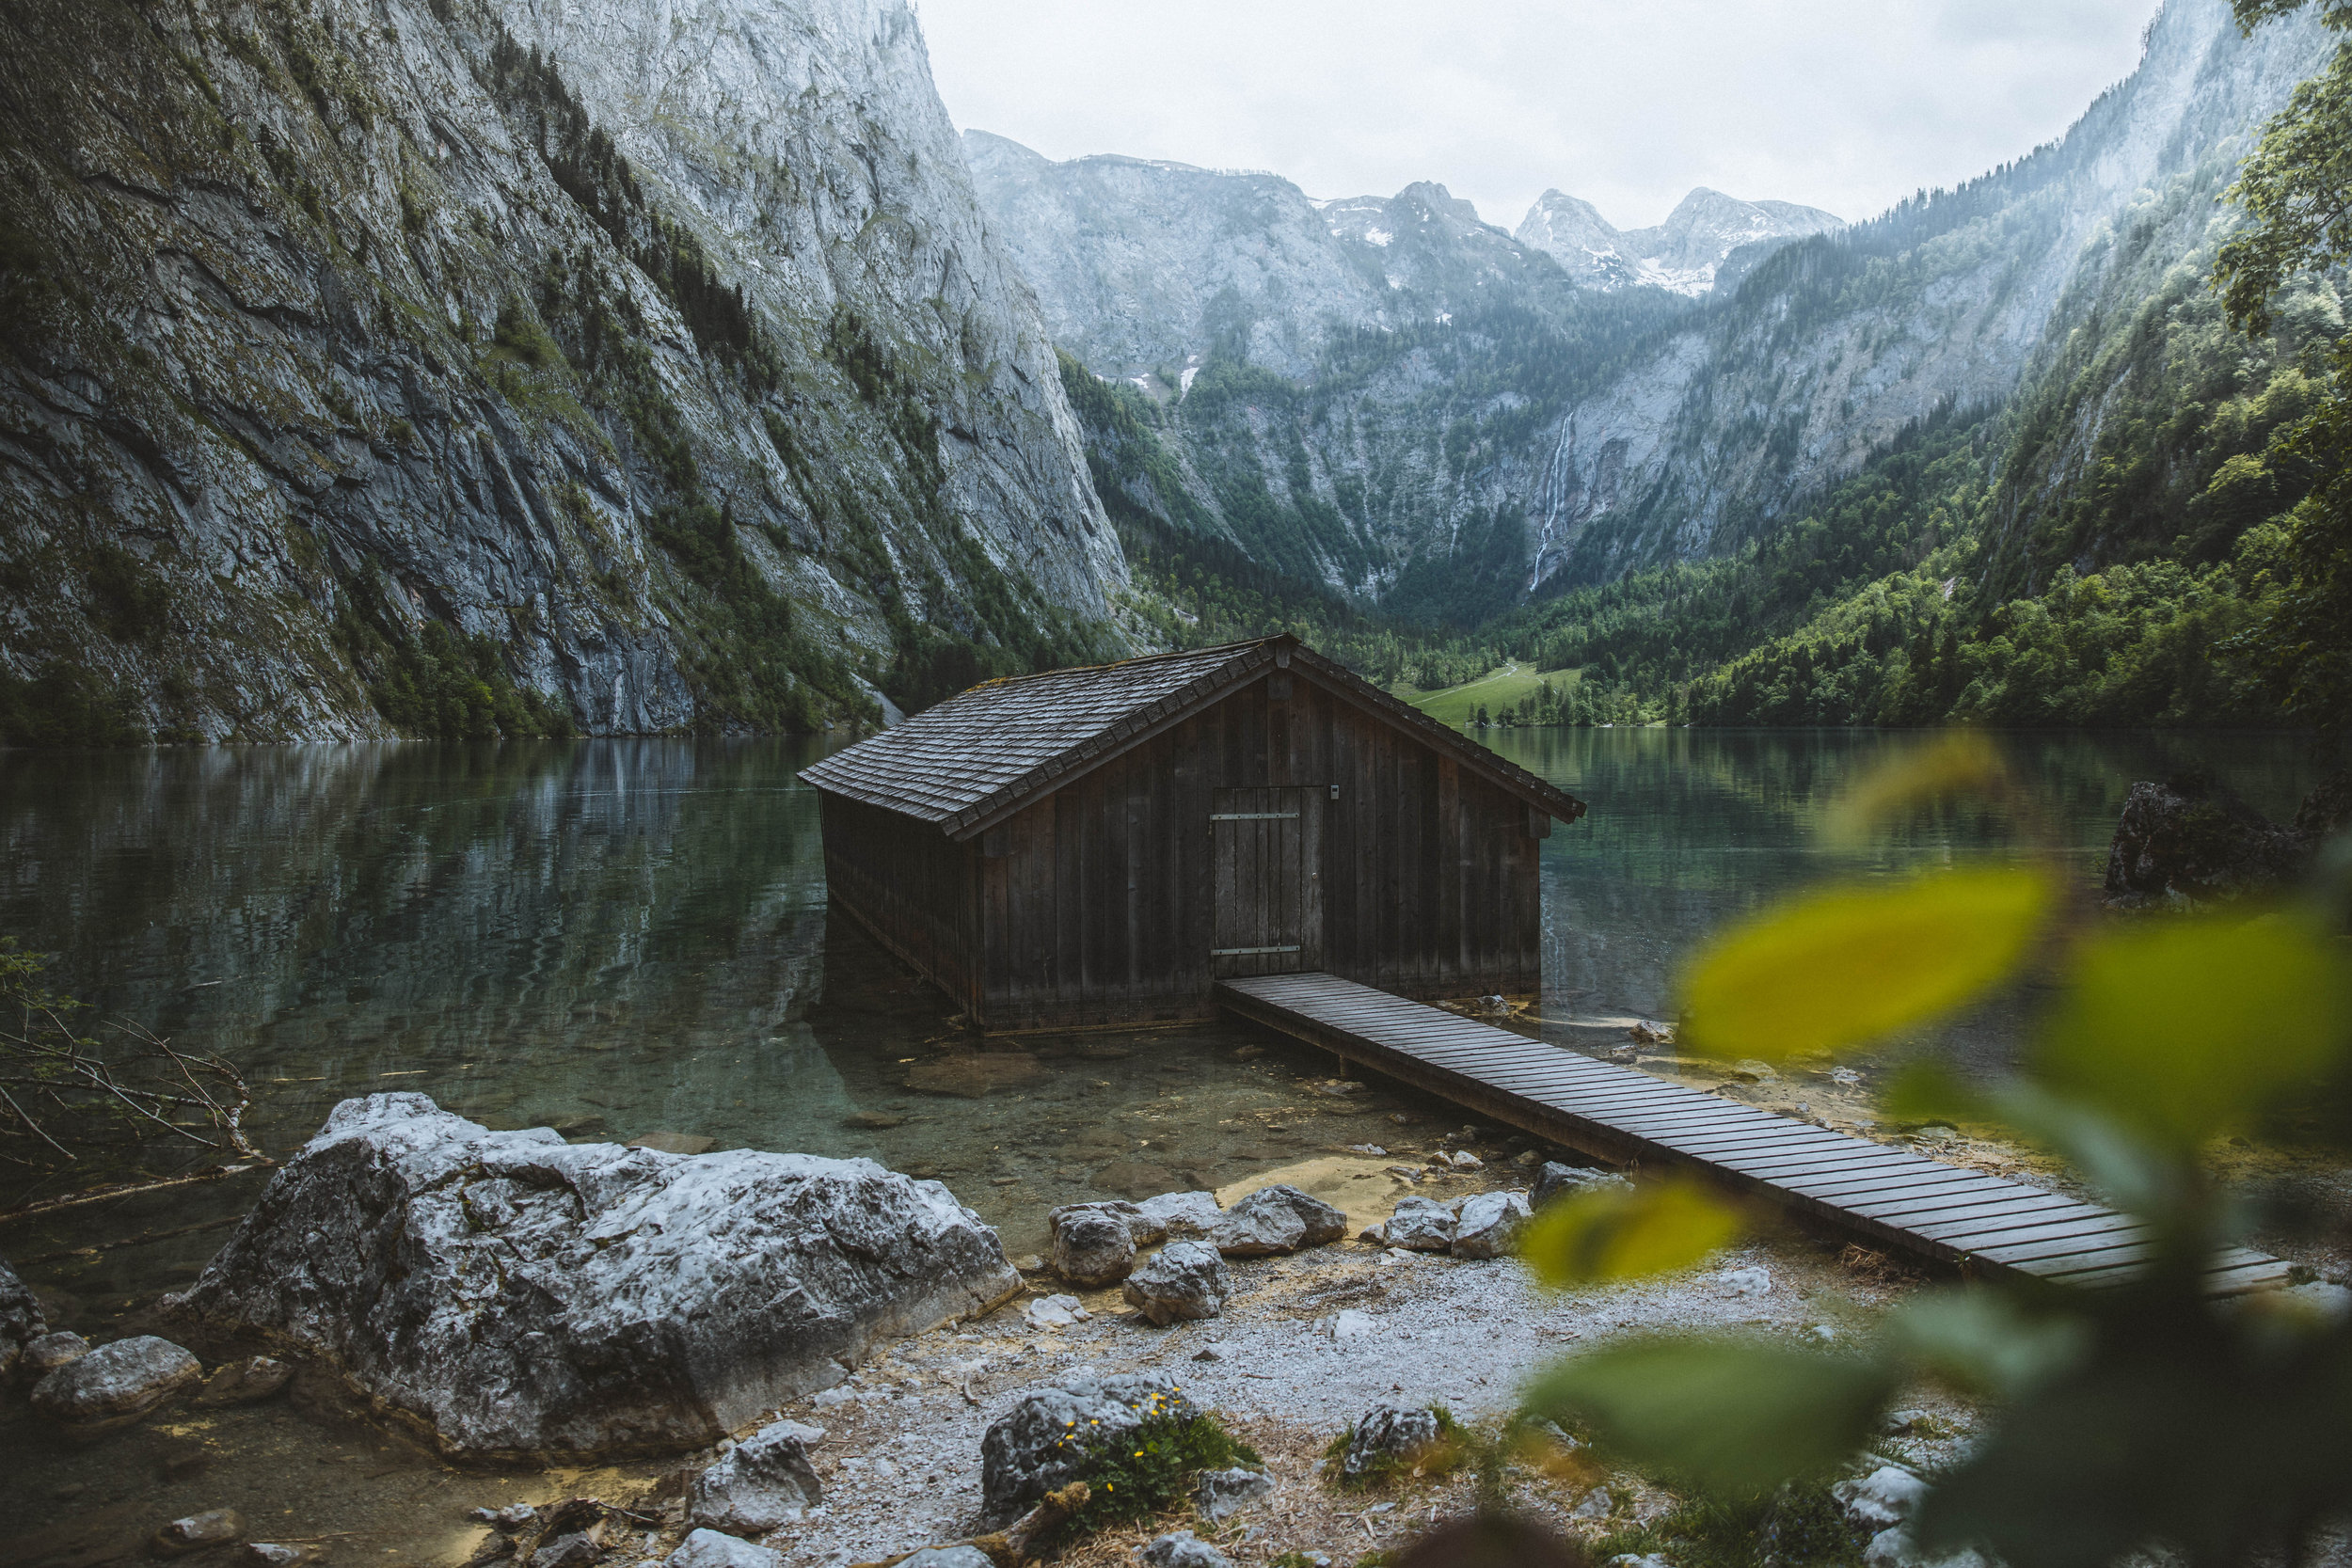 The famous cabin on lake Obersee